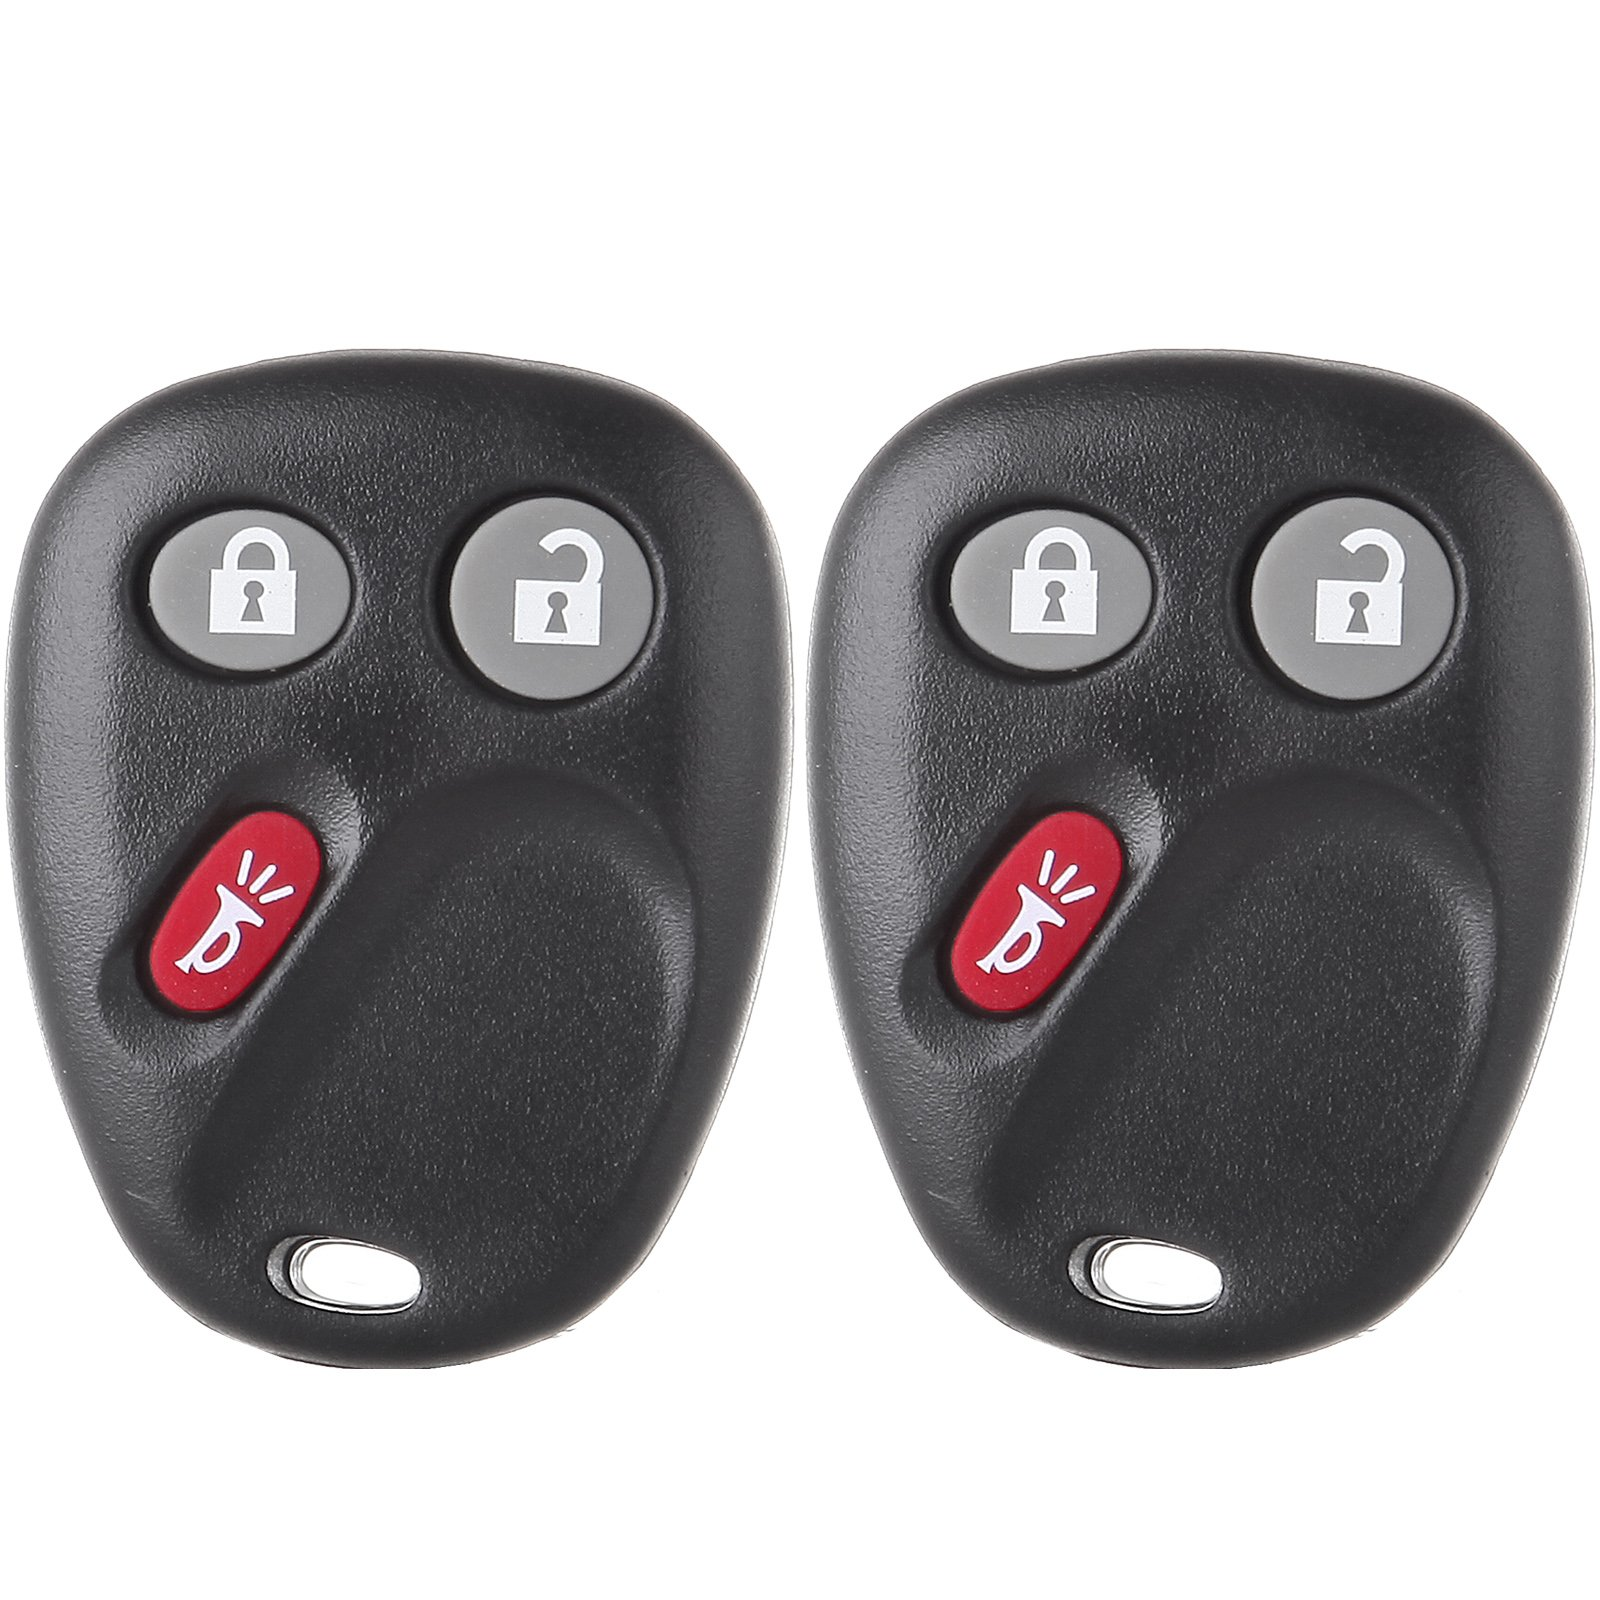 ECCPP 2X 3 Button 315MHz Replacement Keyless Entry Remote Control Key Fob for Chevy Trailblazer/GMC Envoy/Buick Rainier/Isuzu Ascender/Oldsmobile Bravada MYT3X6898B